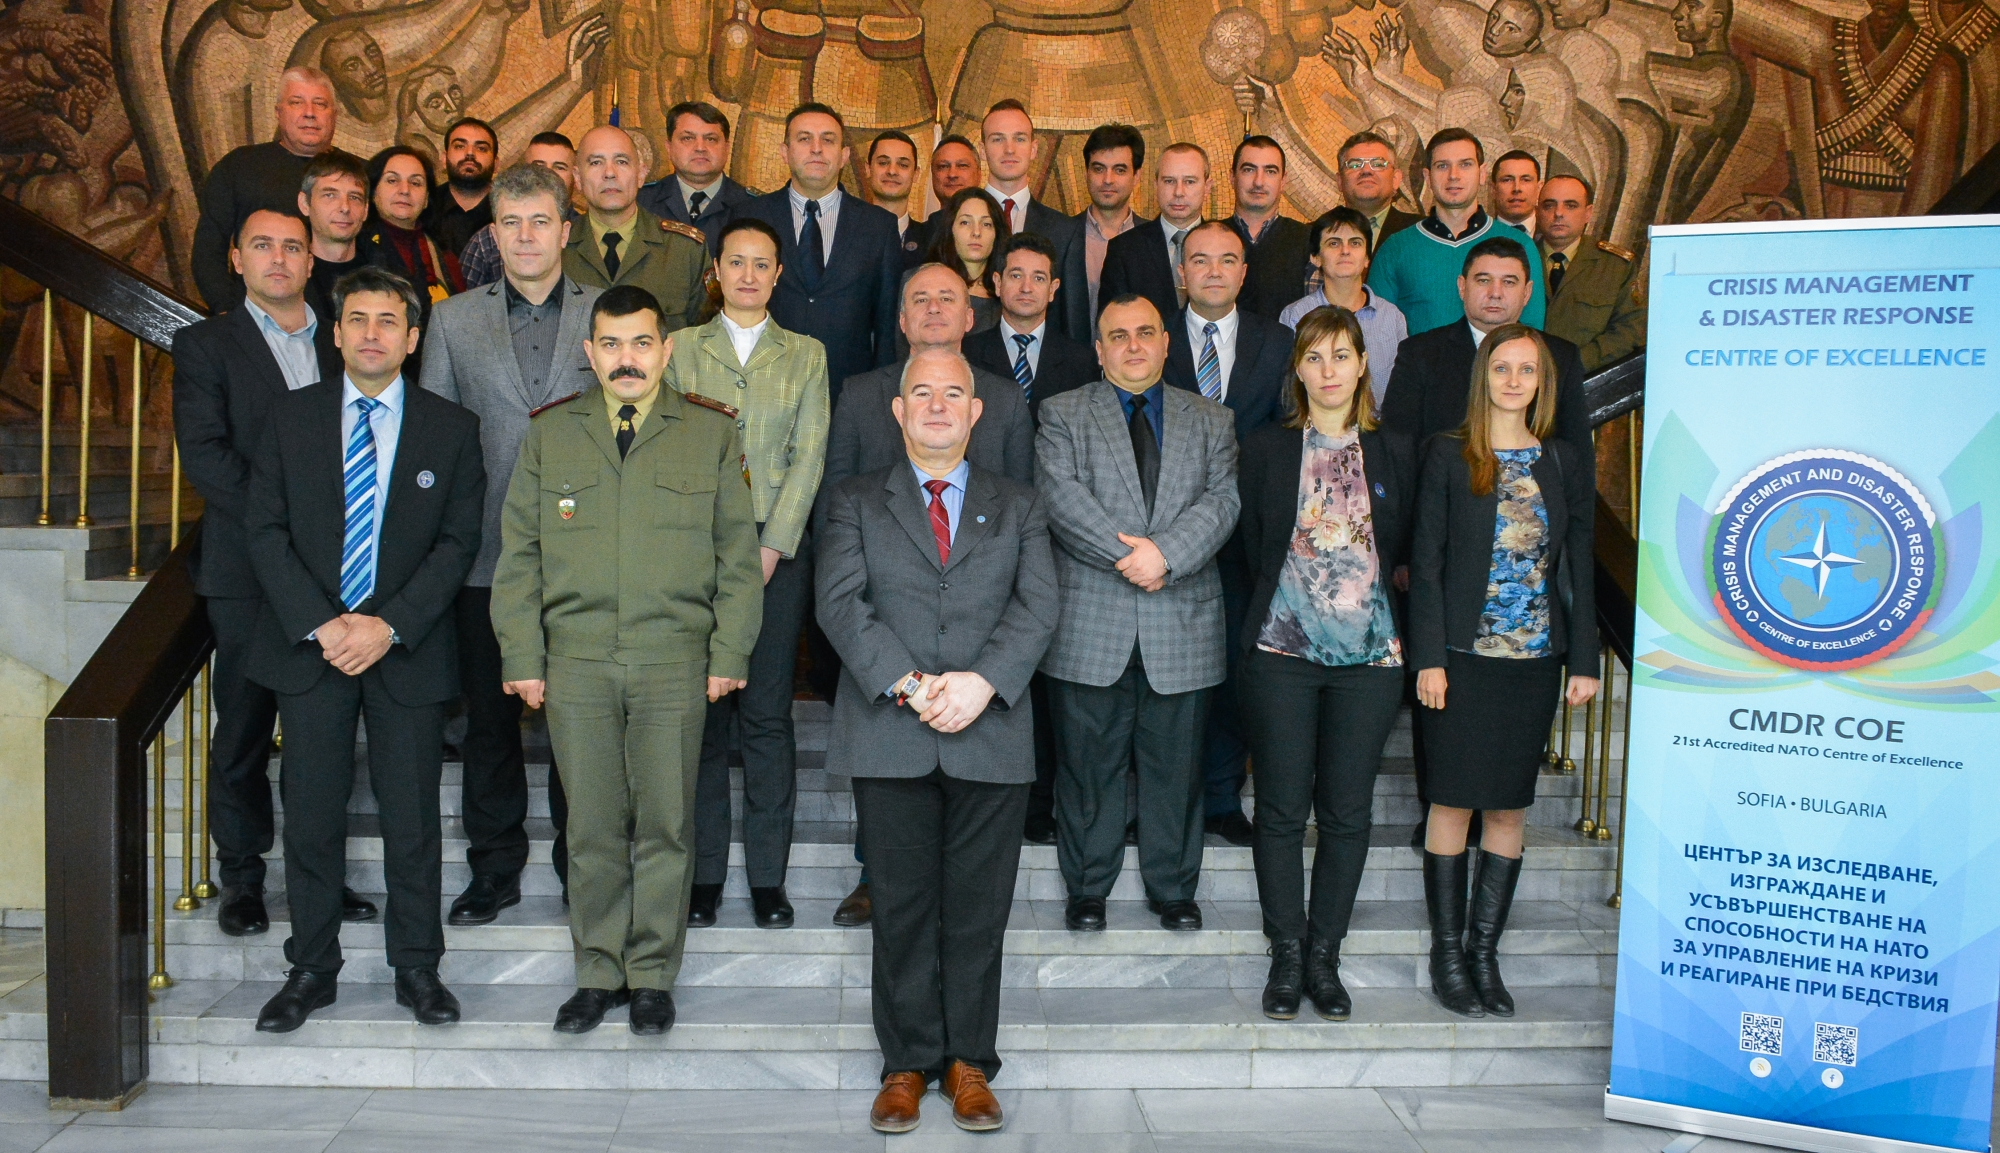 NATO Crisis Response System Course for national administration experts successfully conducted